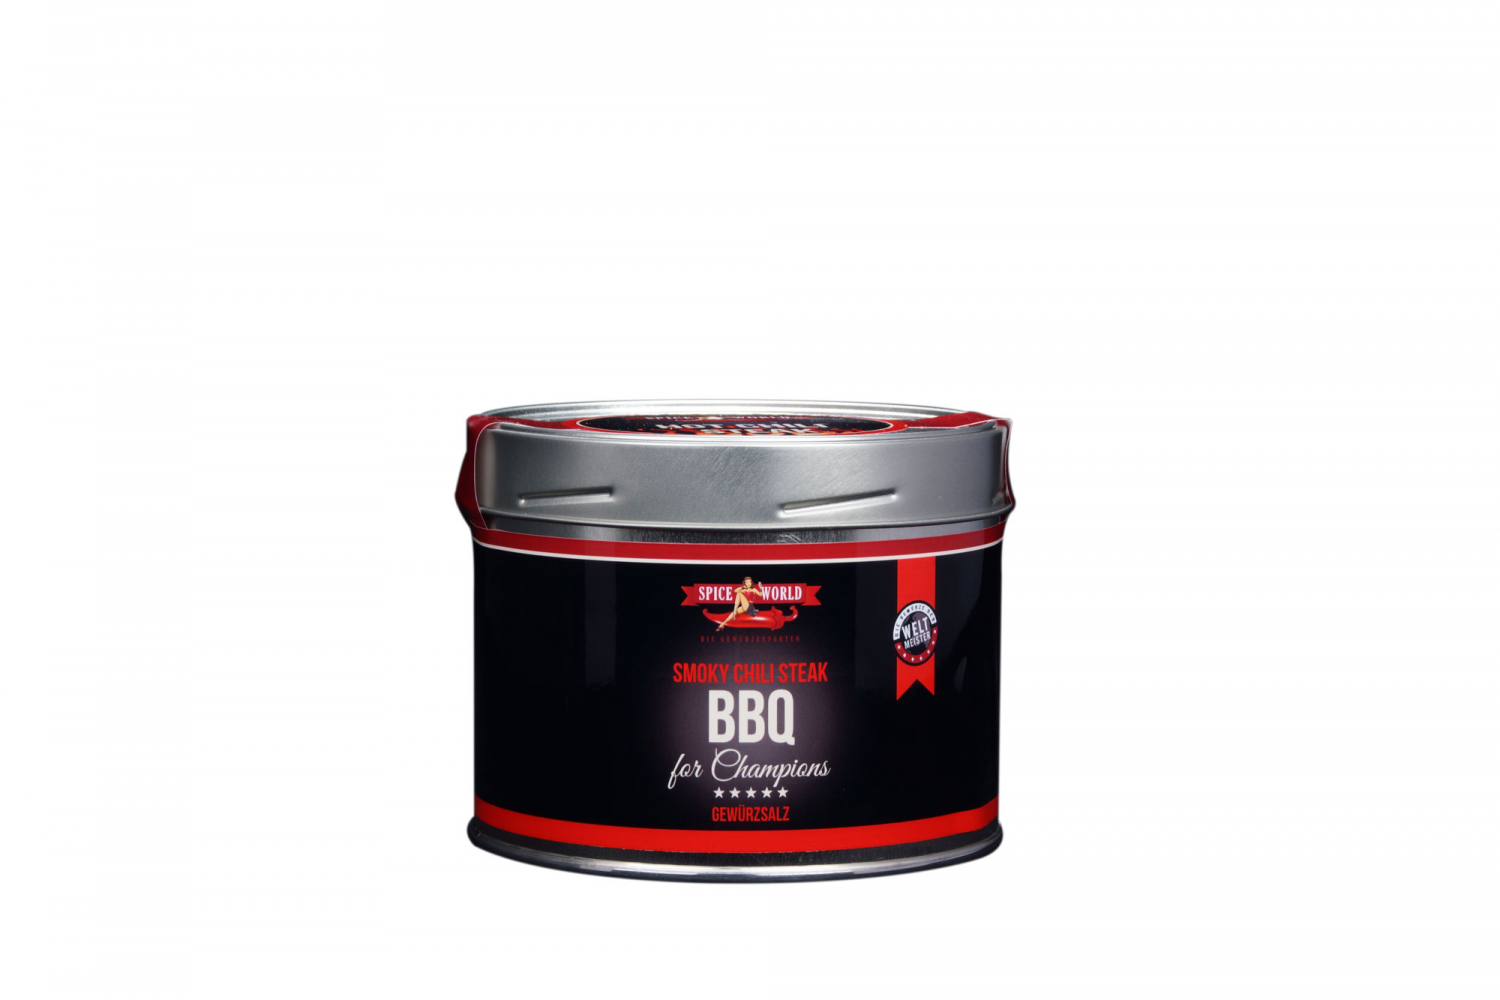 Barbecue-for-Champions - Smoky Chili Steak, 550ml Gastro-Dose 550ml Gastro-Dose